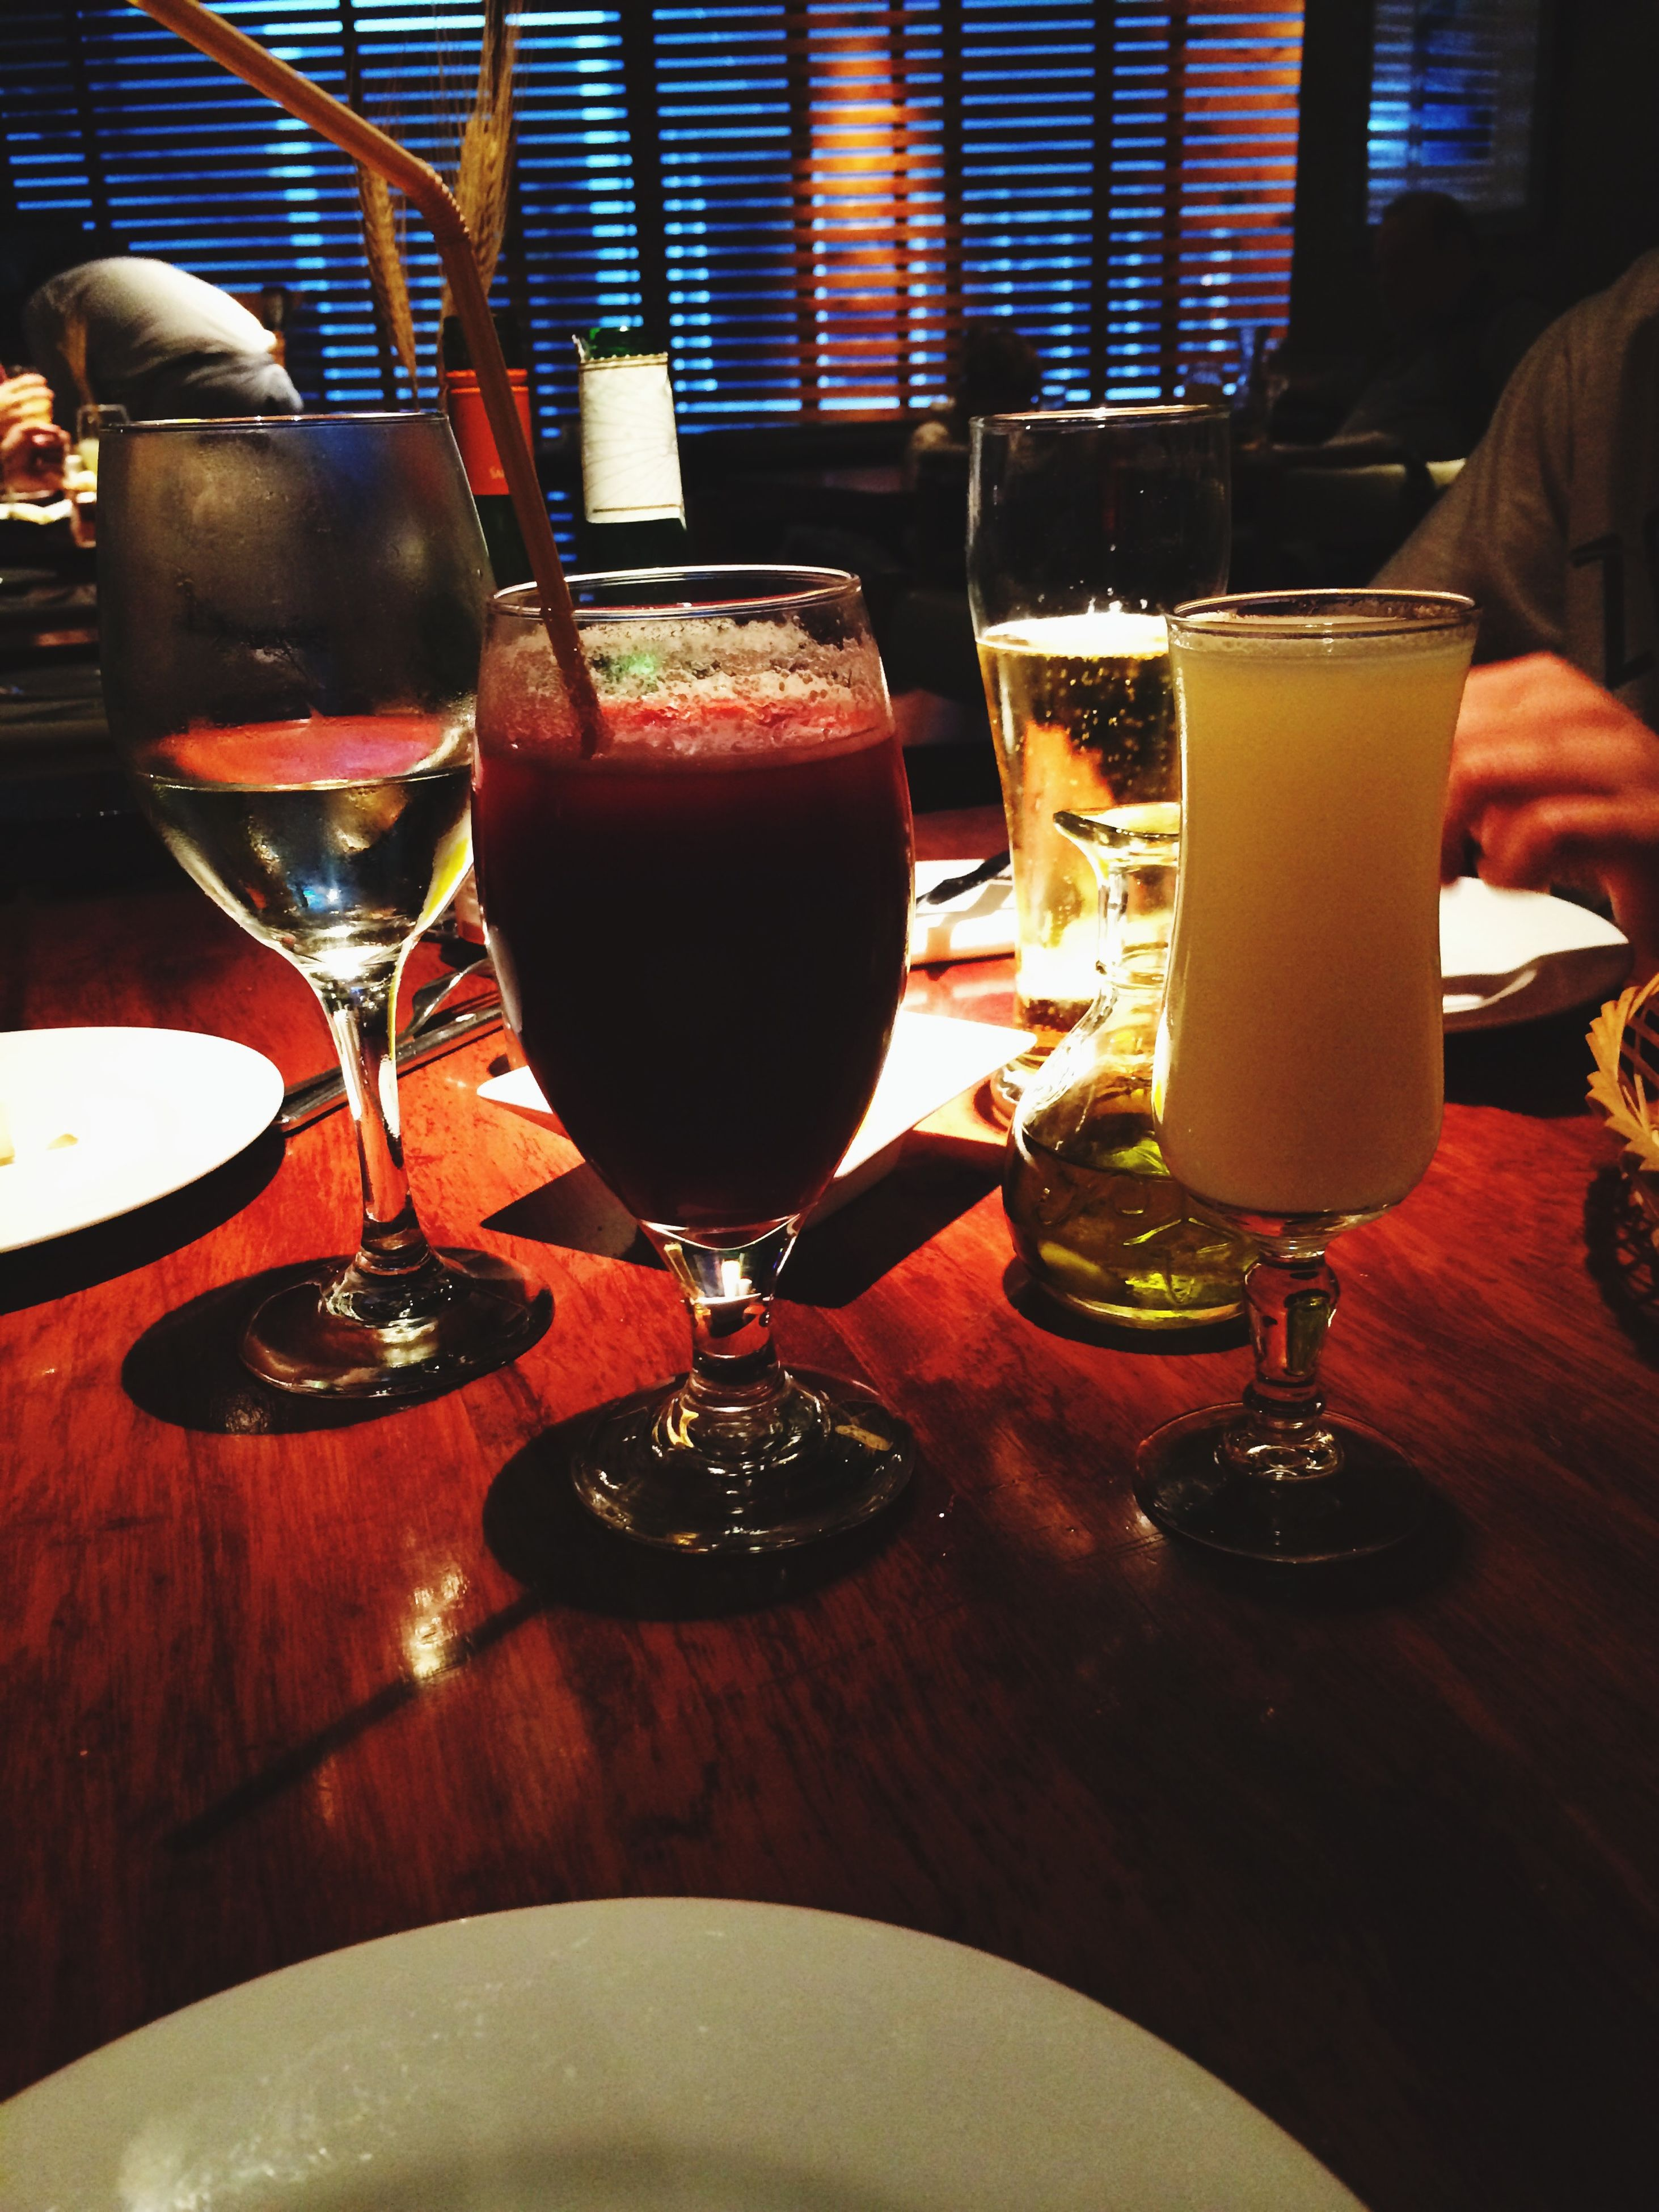 drink, food and drink, refreshment, table, drinking glass, freshness, indoors, alcohol, restaurant, close-up, coffee - drink, wine, frothy drink, still life, glass - material, wineglass, beer glass, incidental people, cafe